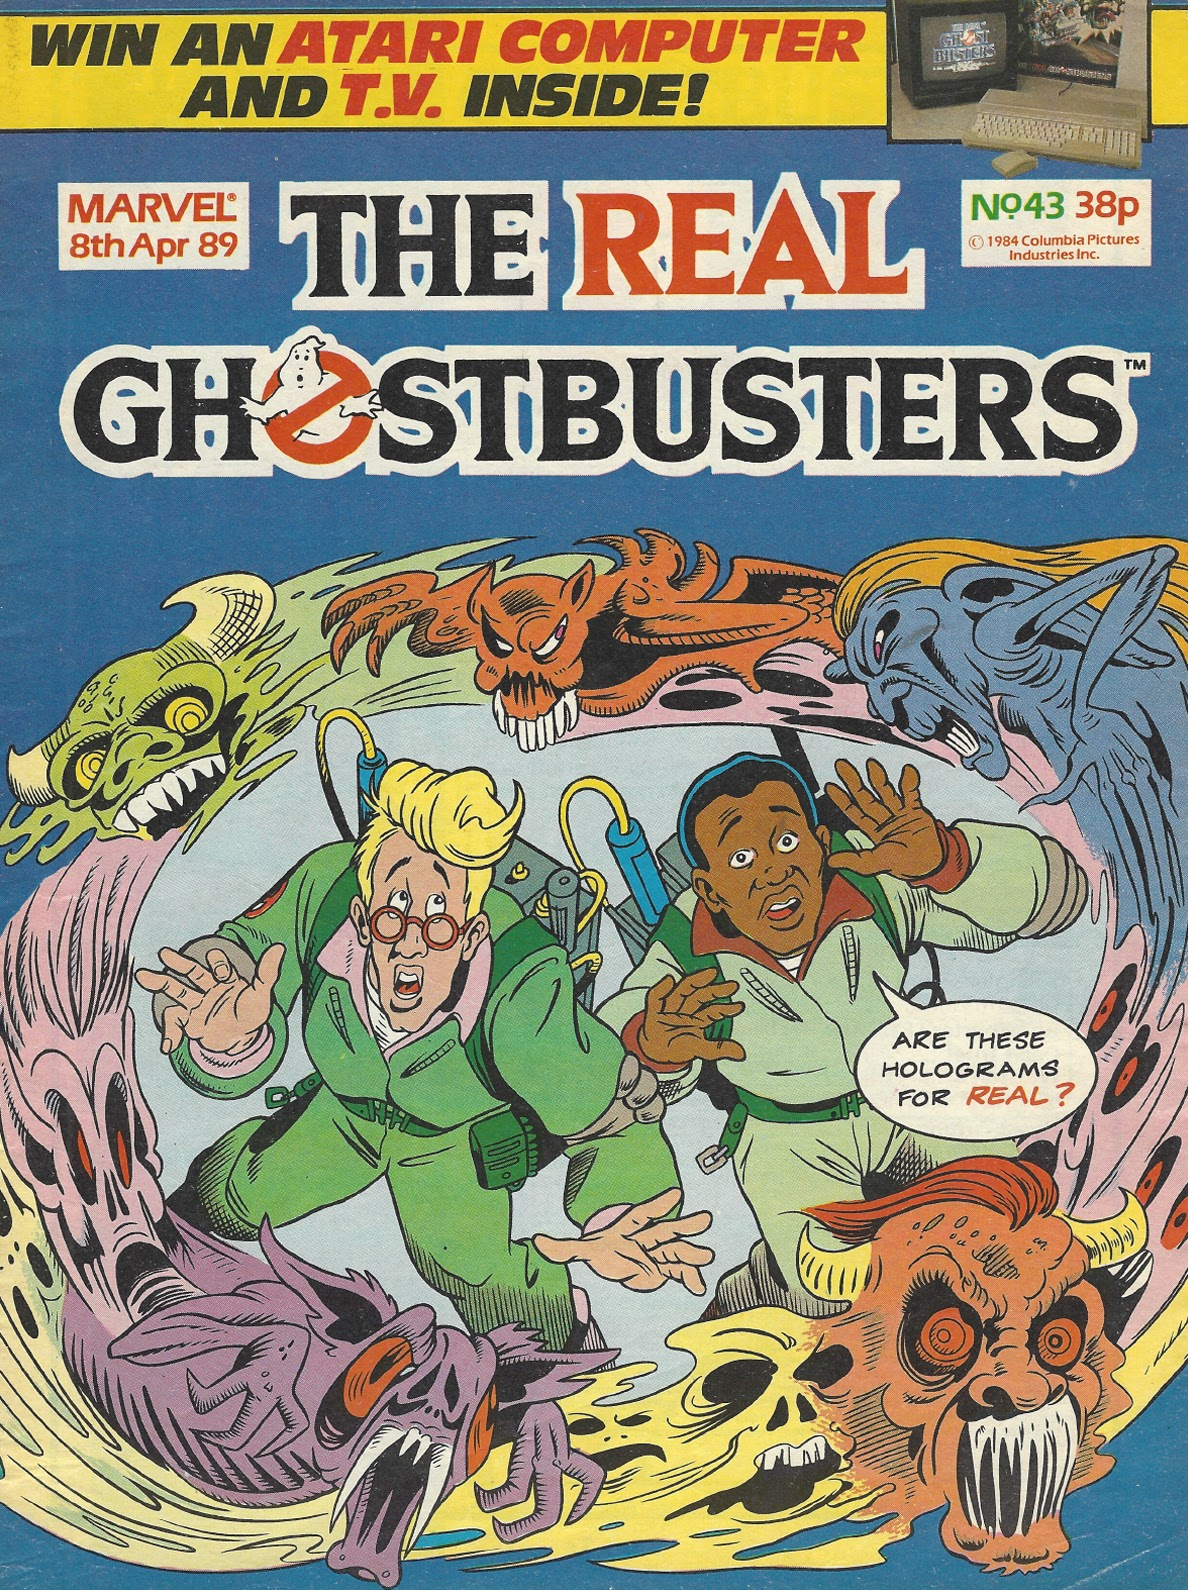 The Real Ghostbusters 43 Page 1